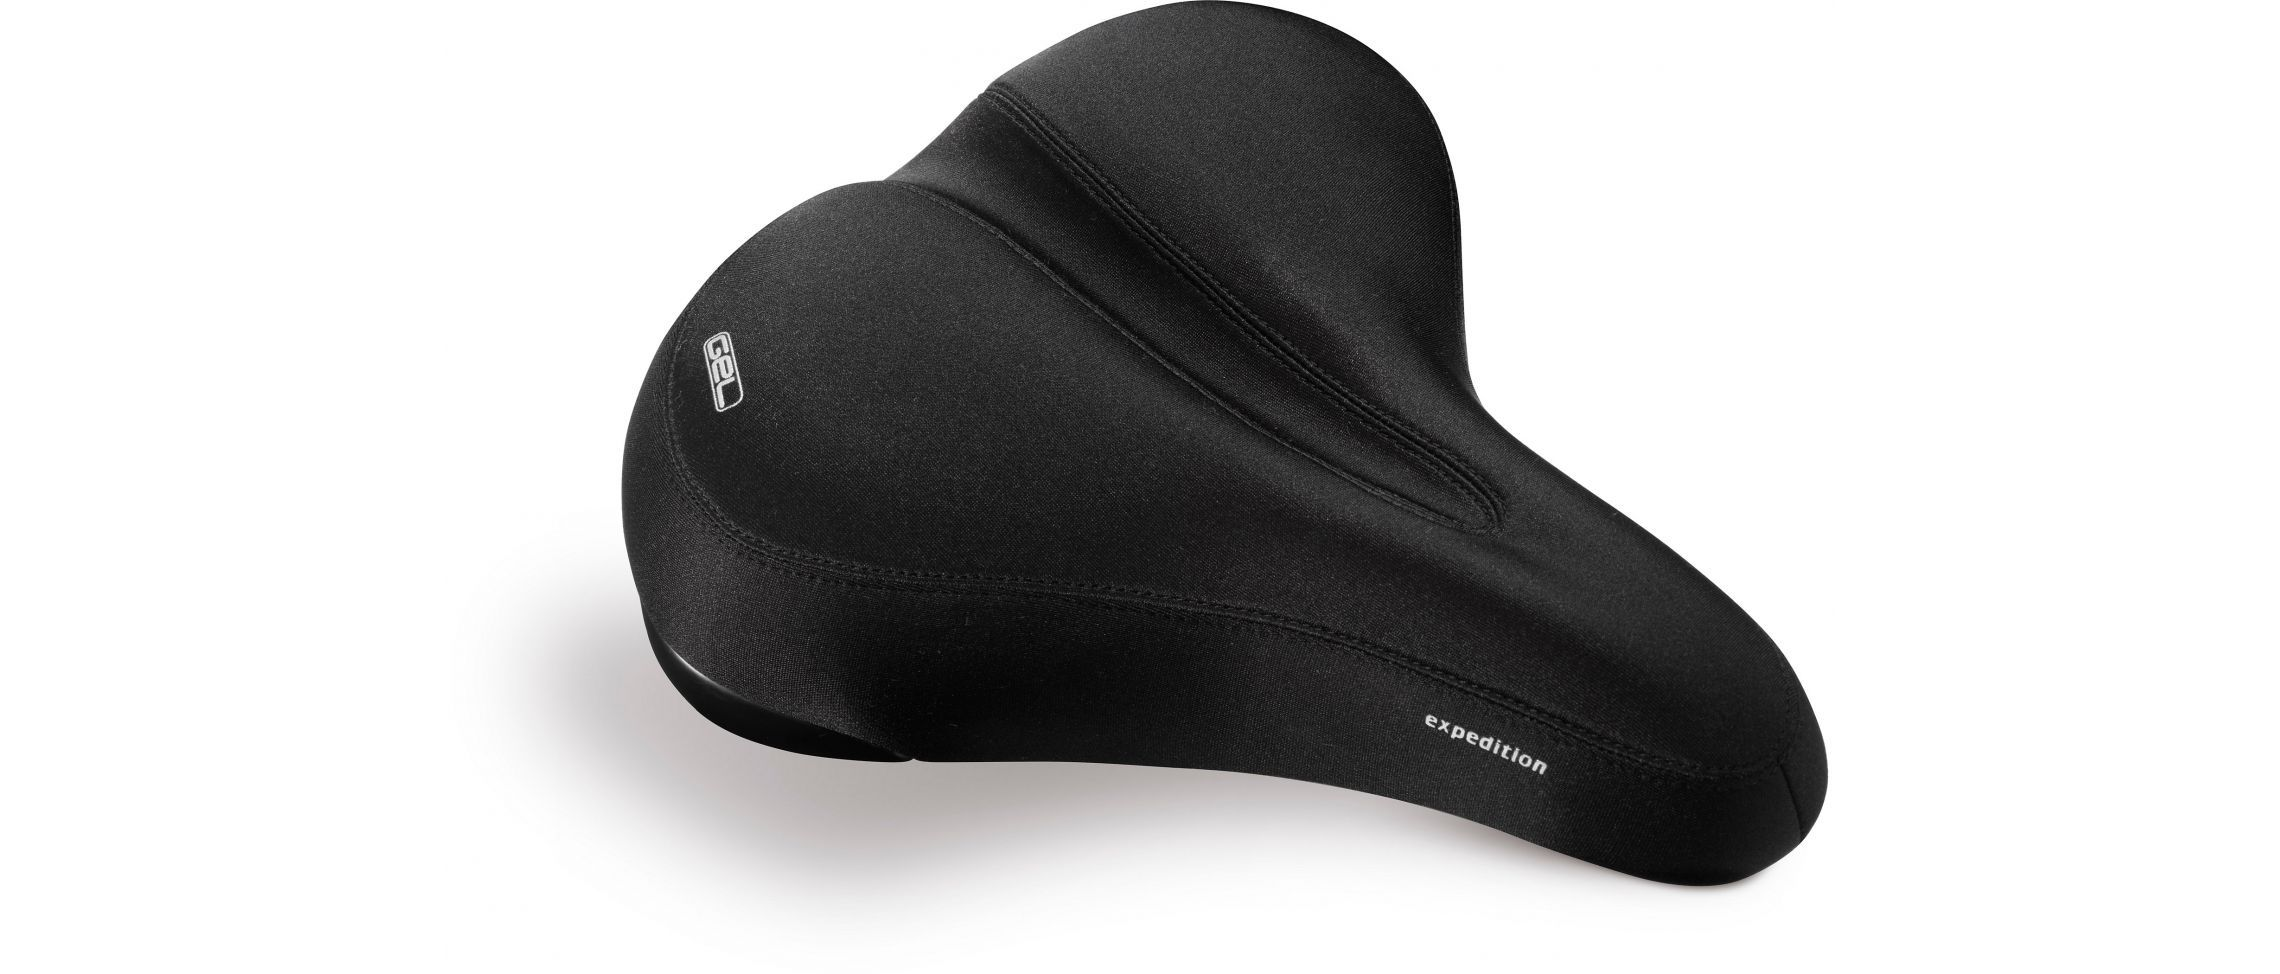 Expedition Gel Sillín Specialized Negro 1 IBKBike.es